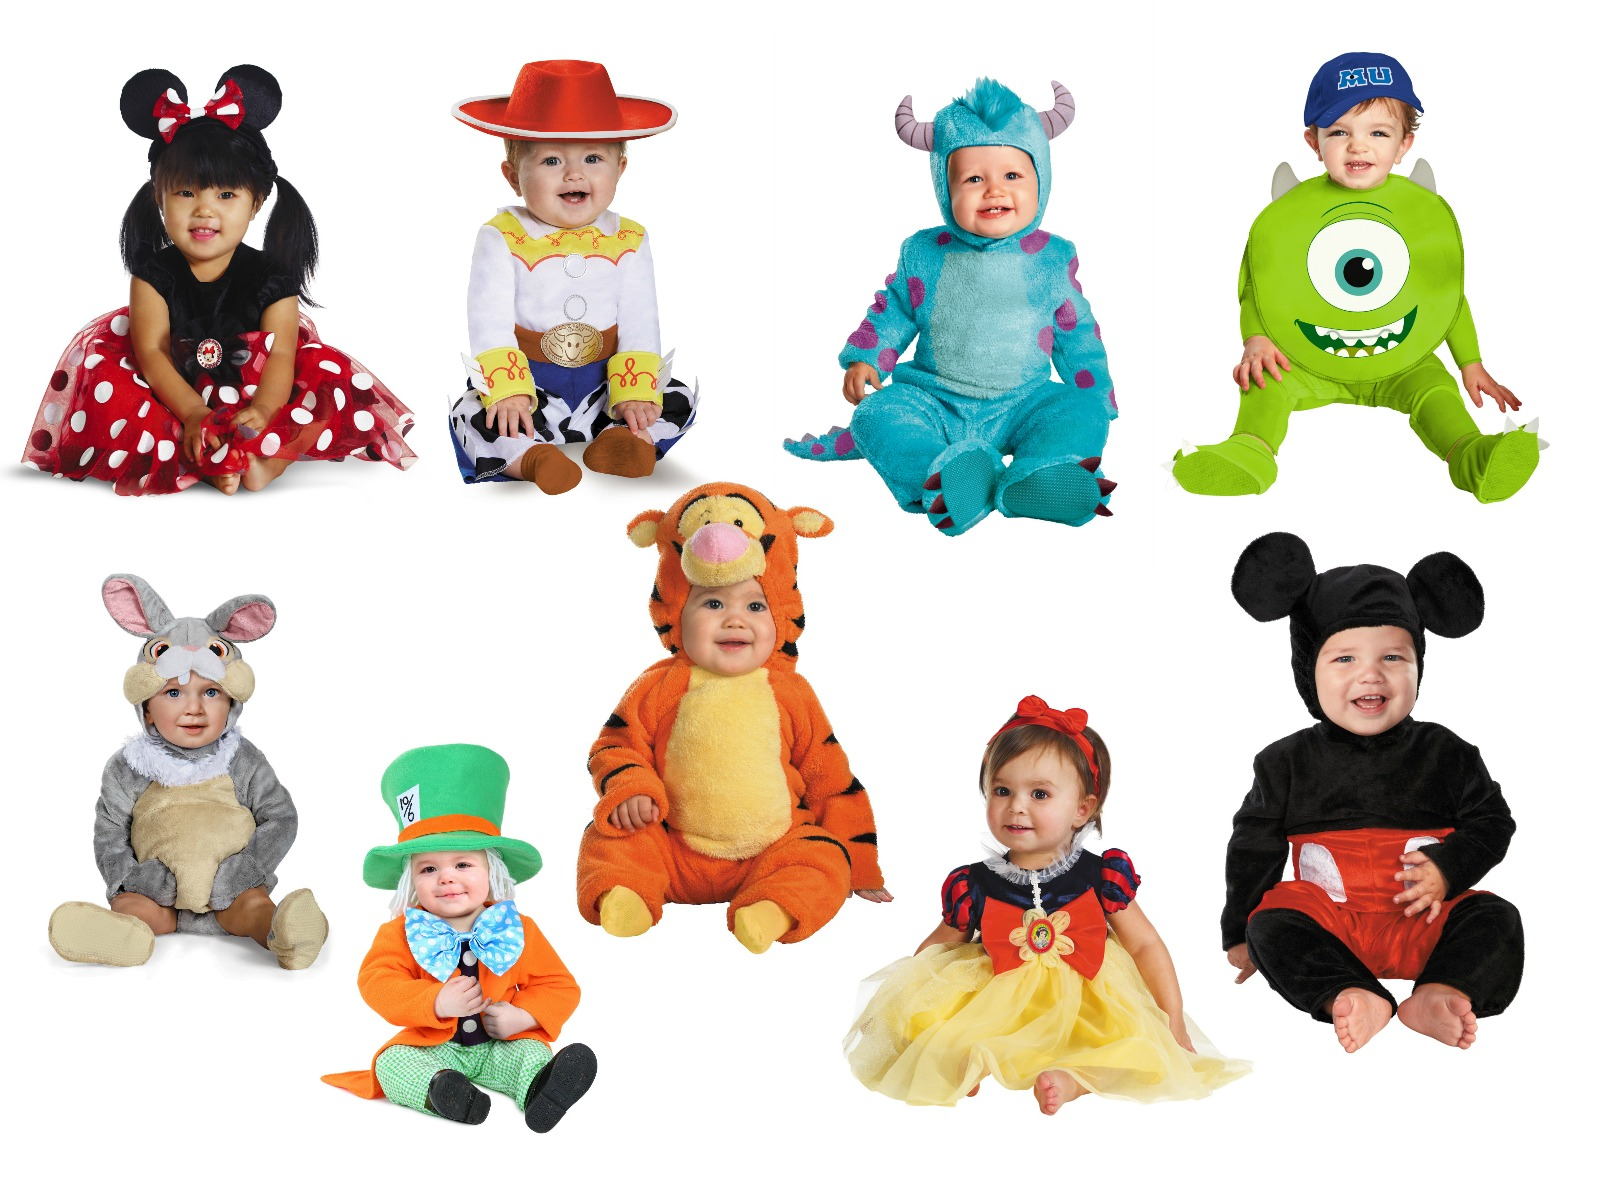 2a82fac9bd5 Best Cute Baby Halloween Costume Ideas for 2017 - Halloween Costumes ...